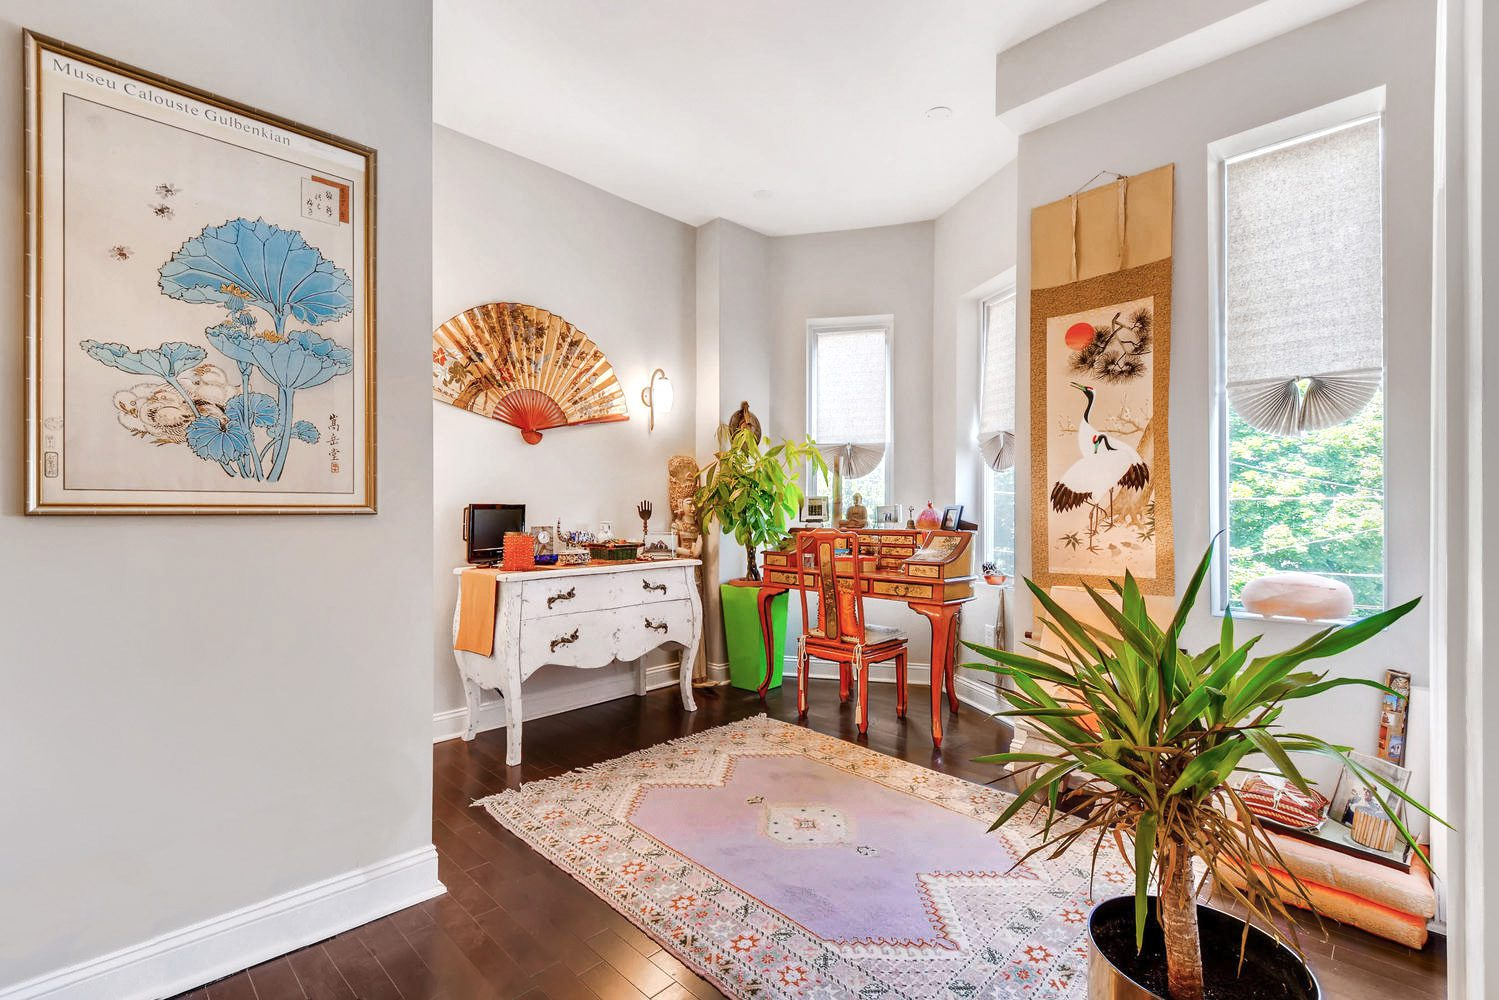 Unicorn Listings Team Baltimore Real Estate Photography Services